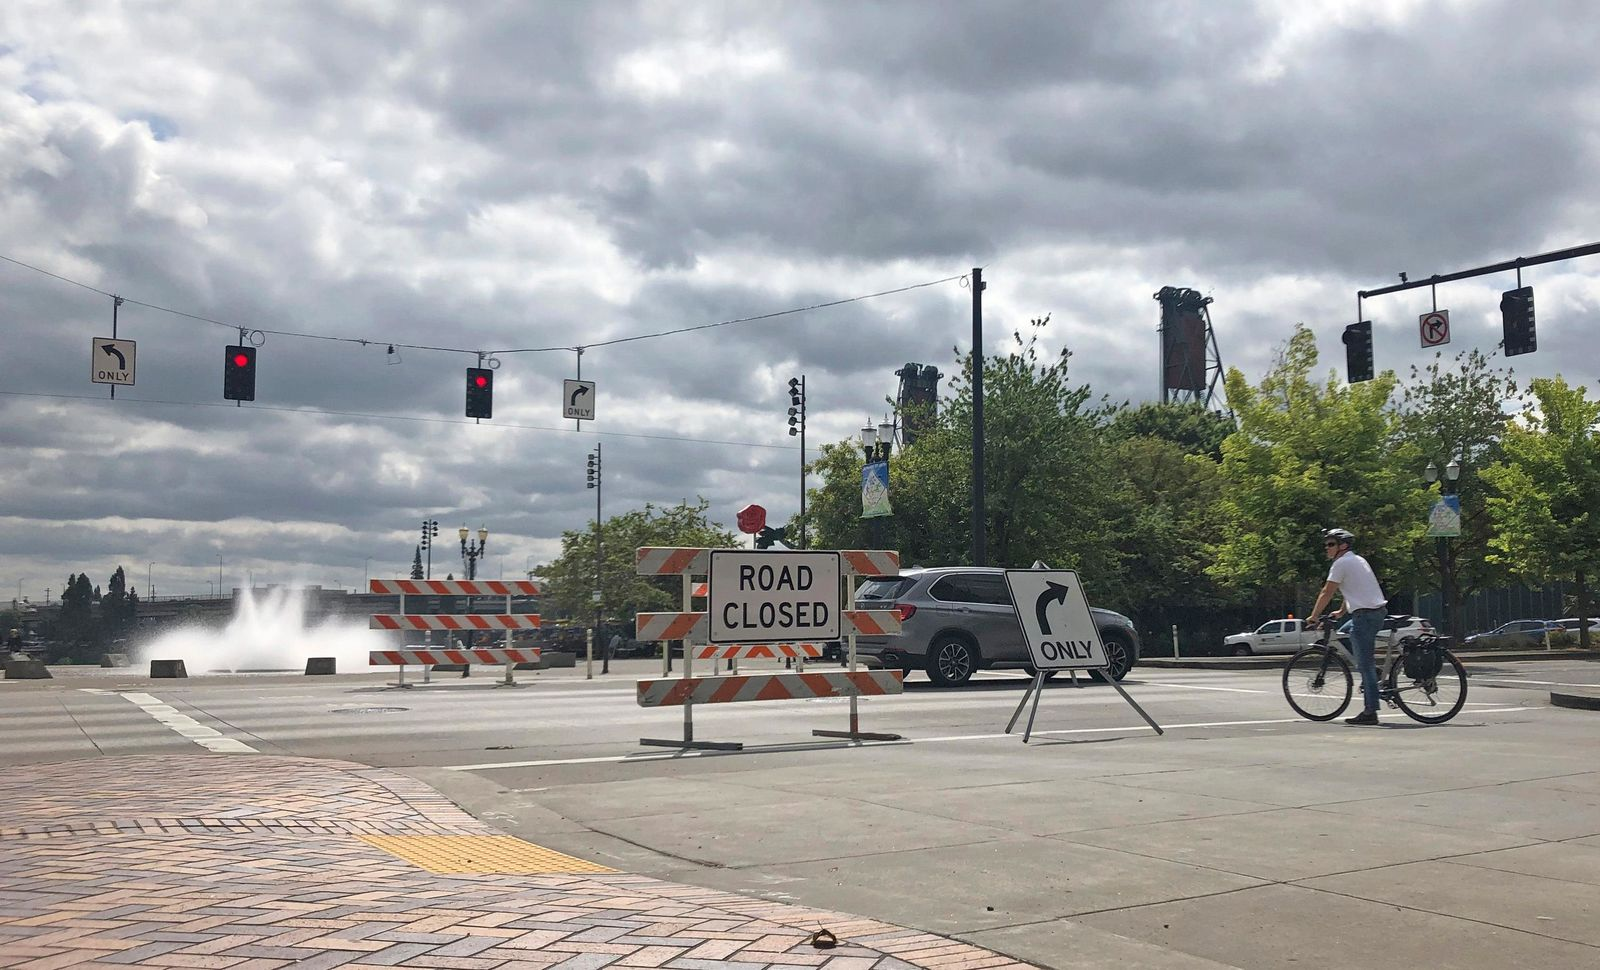 A bicyclist stands by a road closure sign put up in advance of a large rally as the city prepares for crowds in Portland, Ore., Friday, Aug. 16, 2019. In the past week, authorities in Portland have arrested a half-dozen members of right-wing groups on charges related to violence at previous politically motivated rallies as the liberal city braces for potential clashes between far-right groups and self-described anti-fascists who violently oppose them. (AP Photo/Gillian Flaccus)